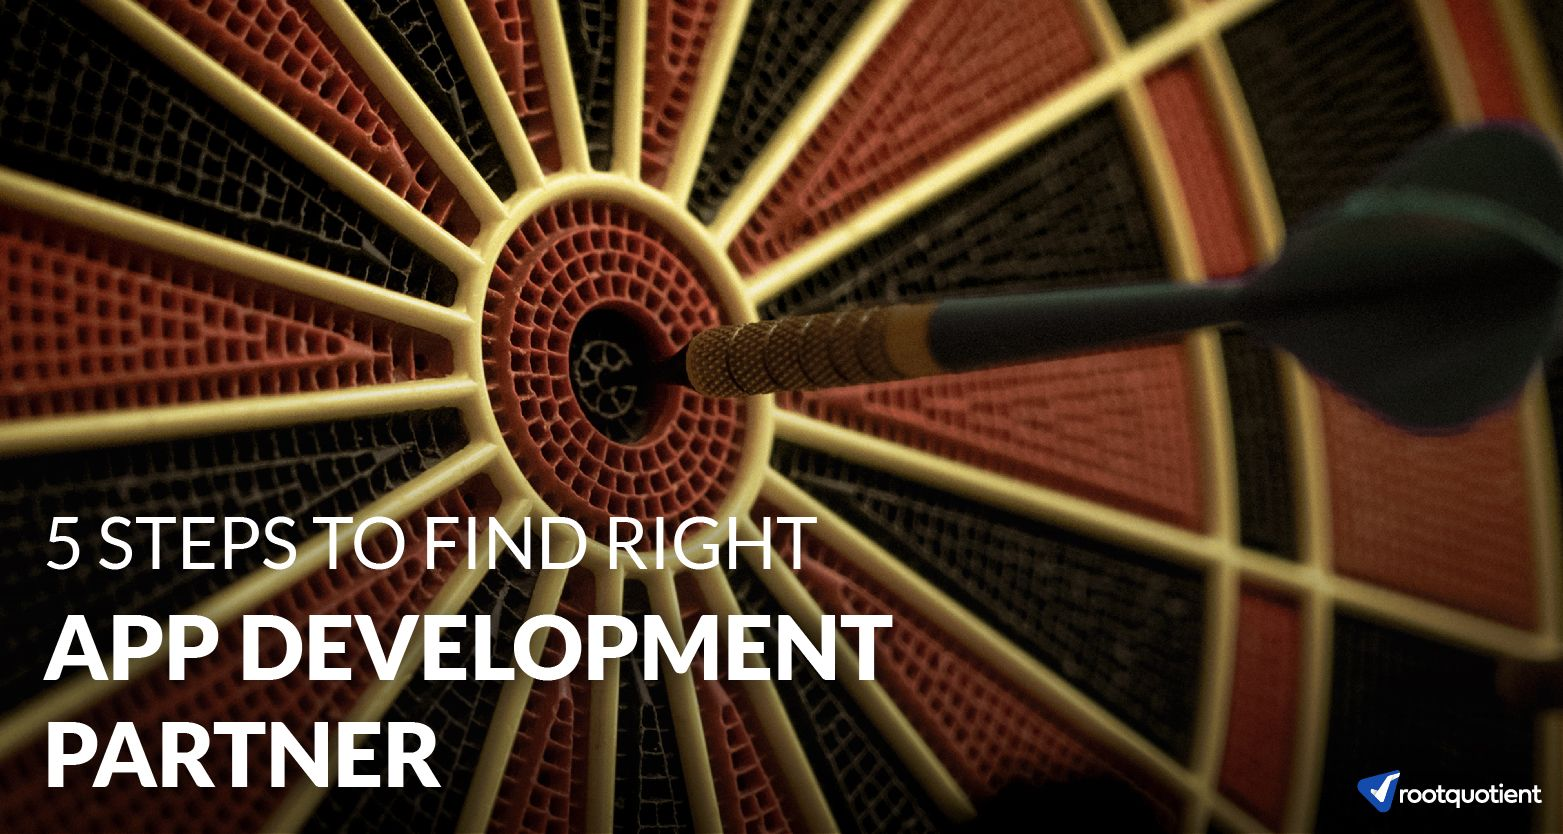 5 Steps to find the right App Development Partner